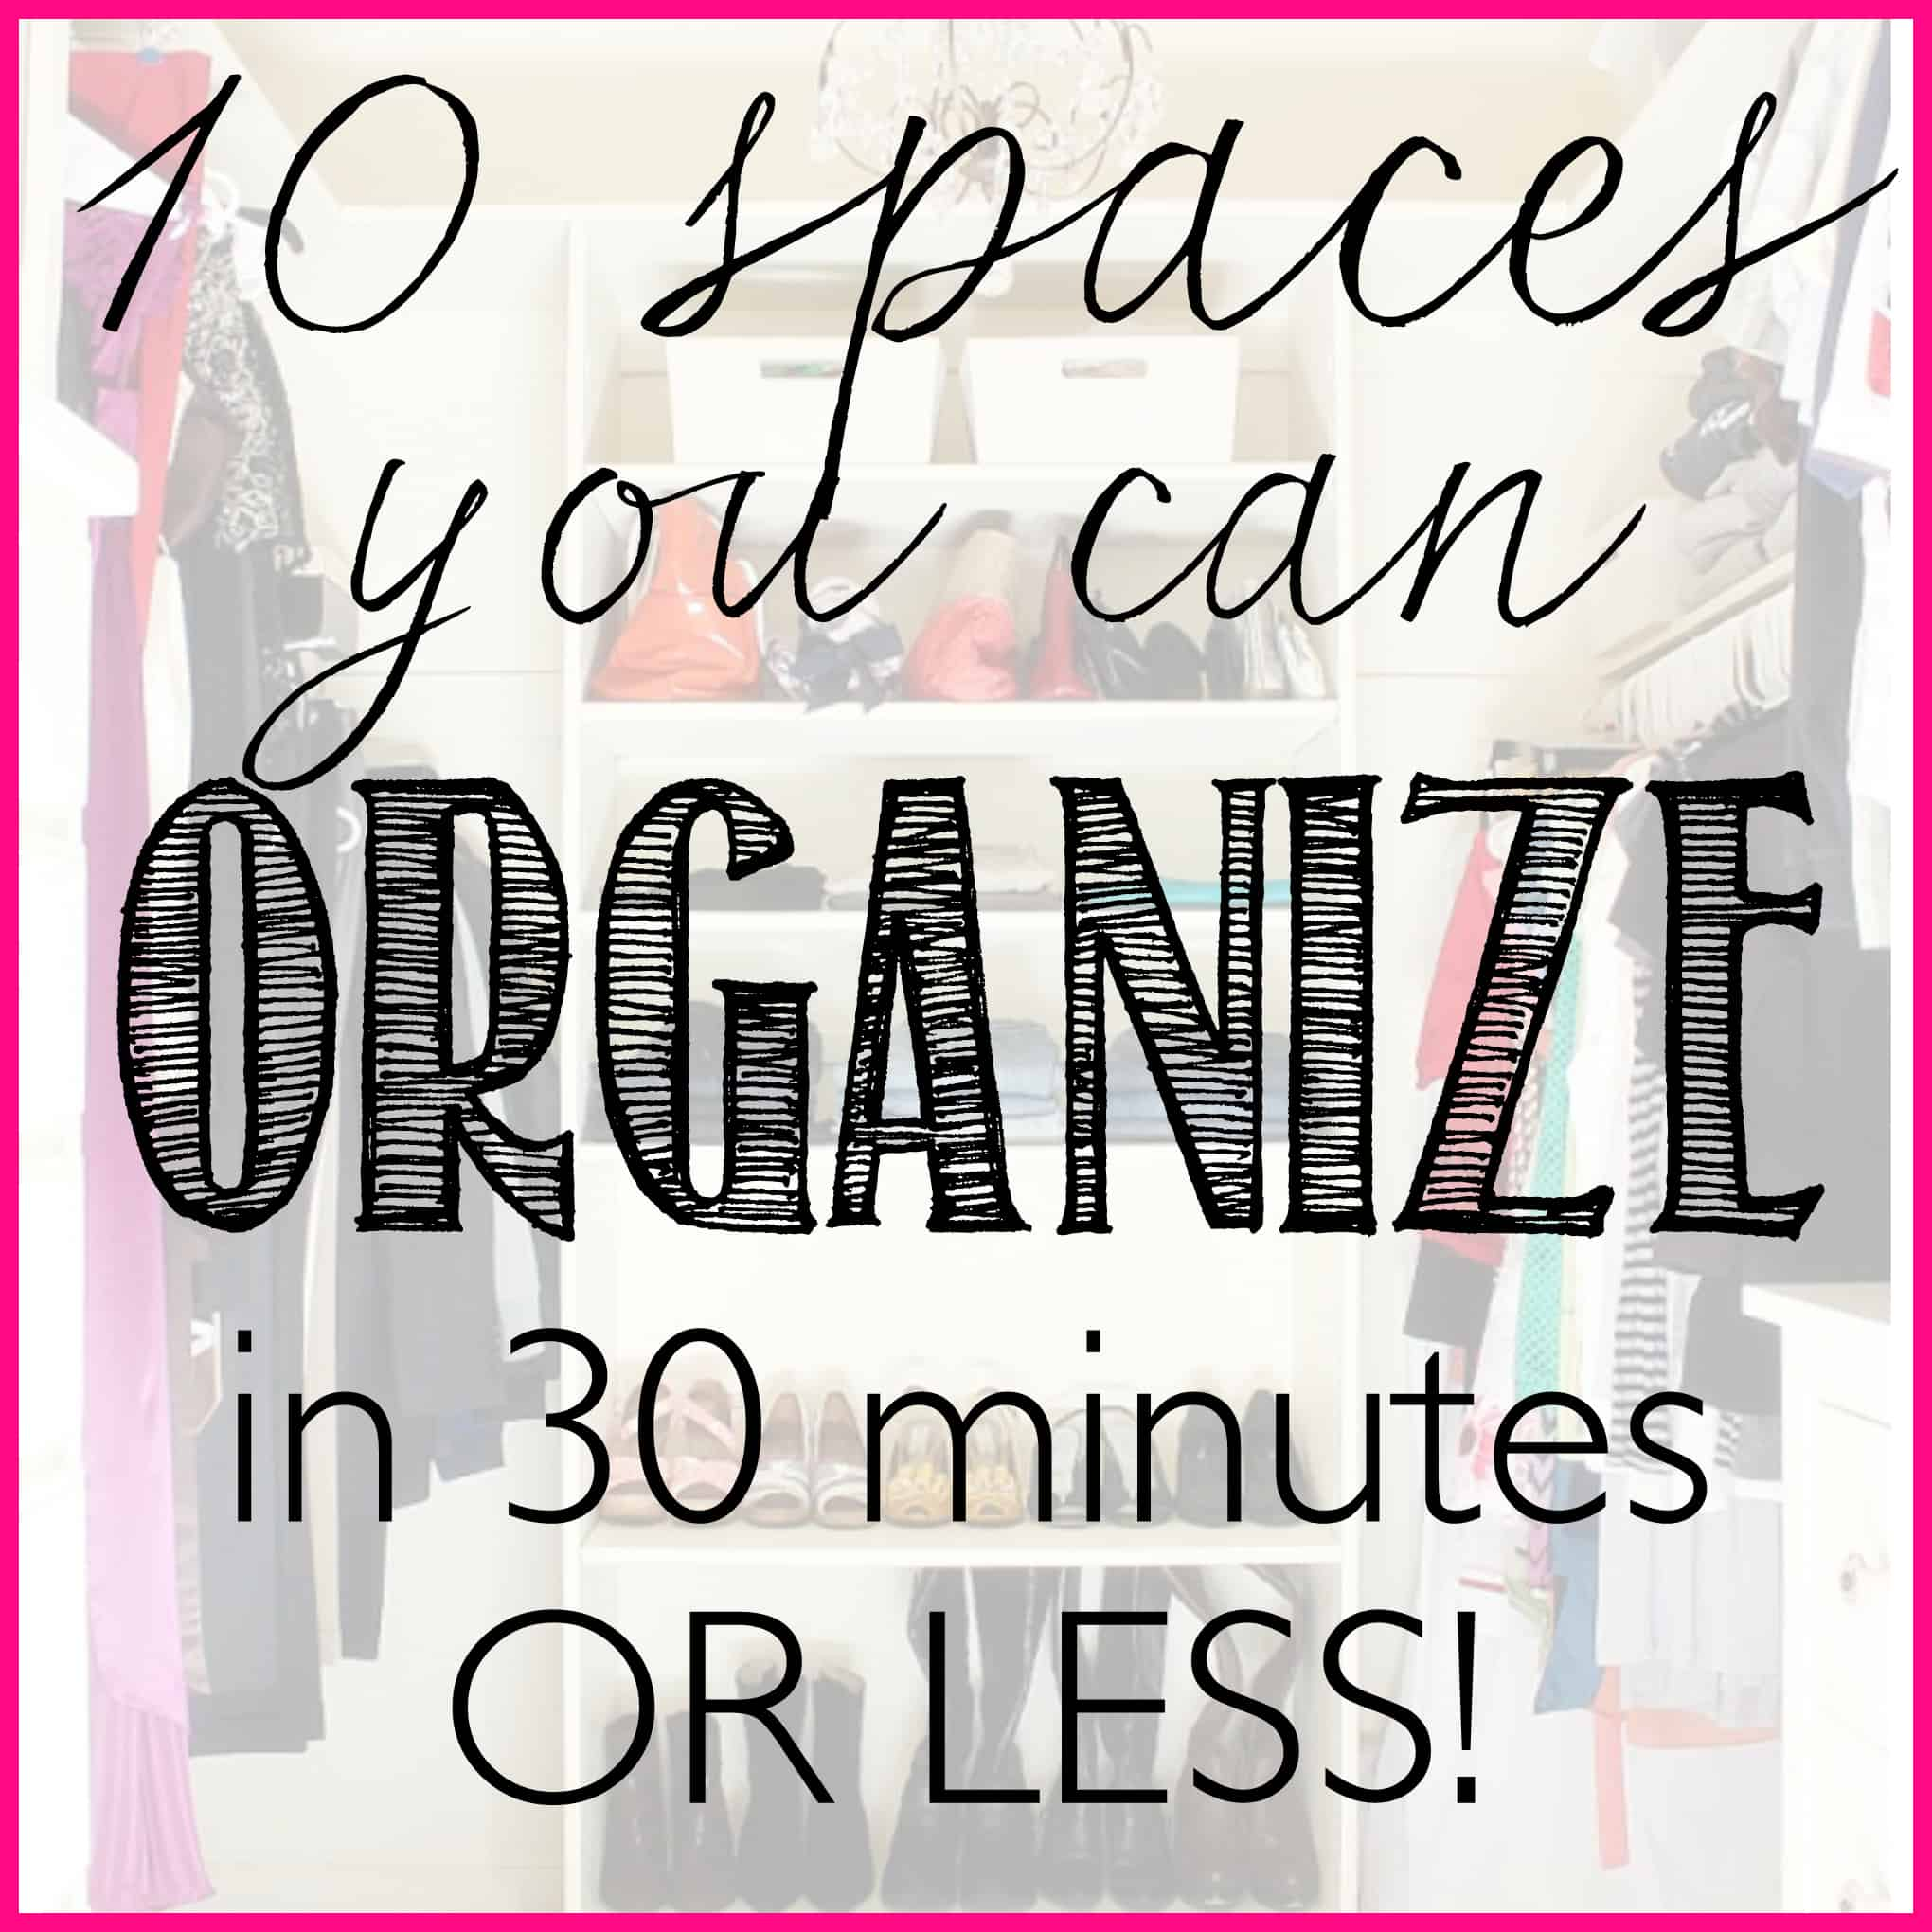 10 spaces you can organize in 30 minutes or less - a series that takes your limited time into consideration, and gives you the tools to organize your home | Ask Anna